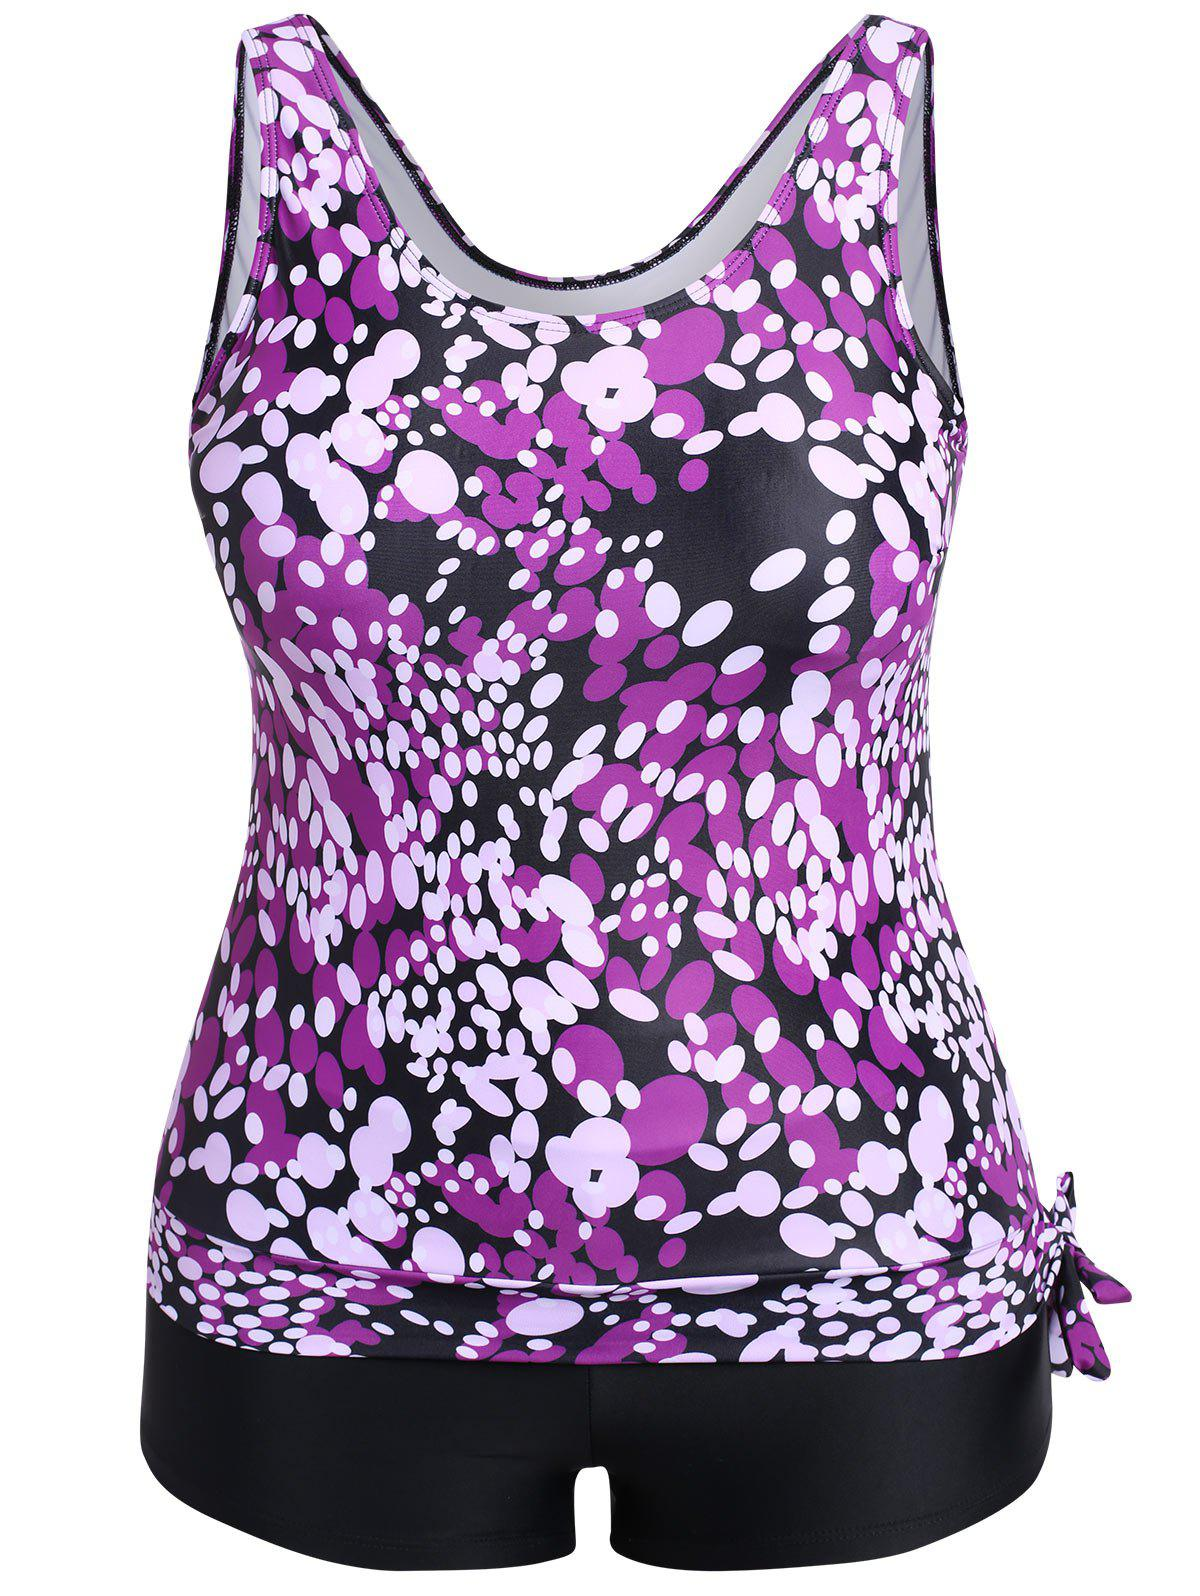 Image For Ellipse Printed Plus Size Tankini with Side Bowknot